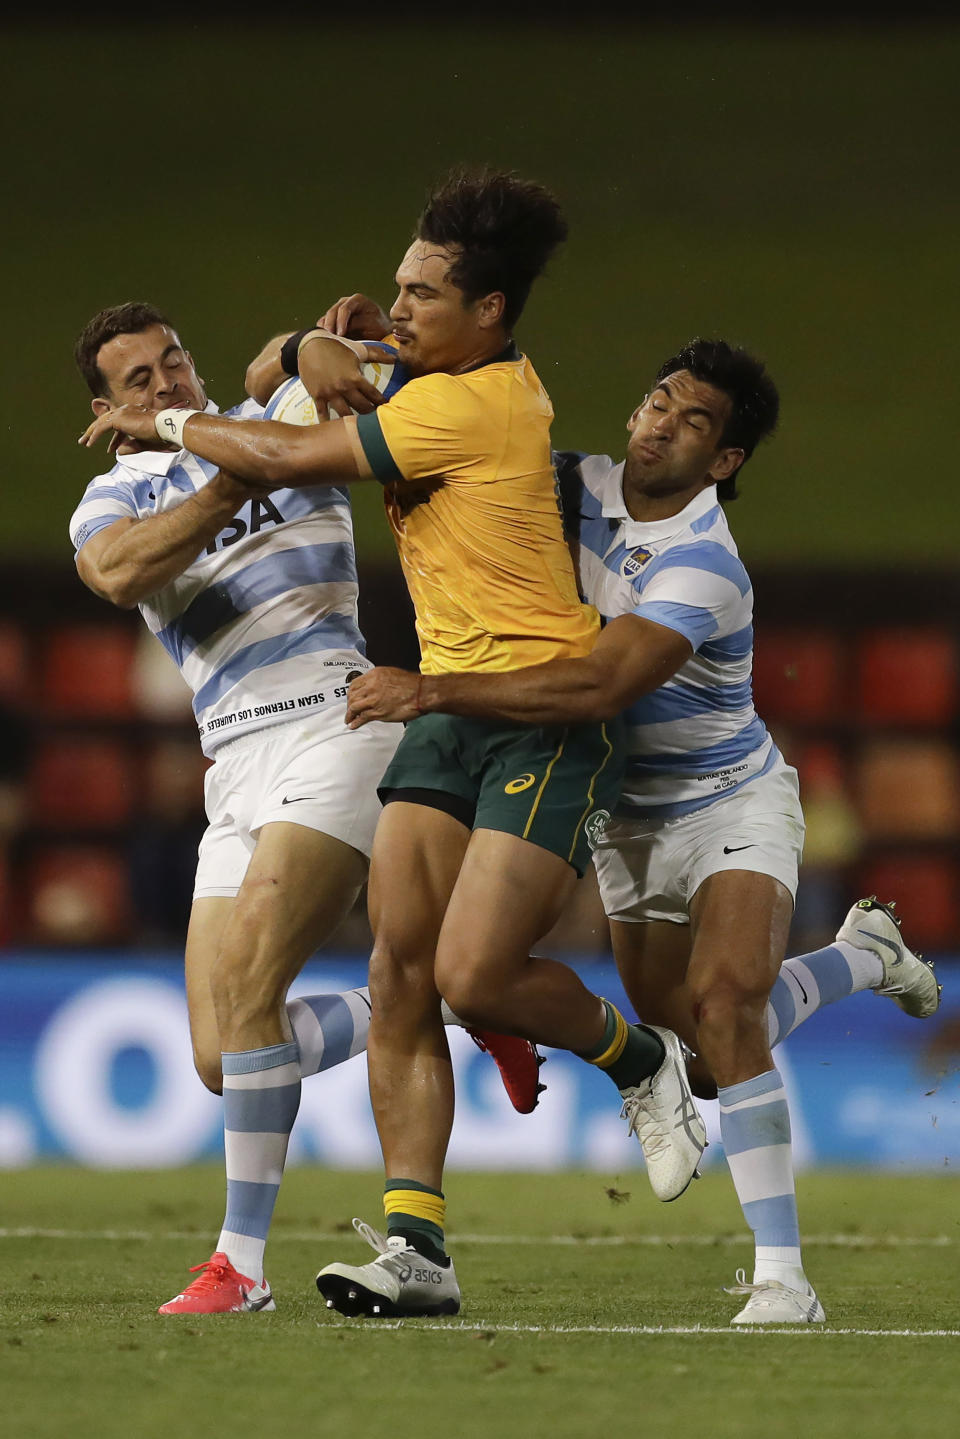 Australia's Jordan Petaia, center, is tackled by Argentina's Emiliano Boffelli, left, and Argentina's Matias Orlando, right, during their Tri-Nations rugby union match in Newcastle, Australia, Saturday, Nov. 21, 2020. (AP Photo/Rick Rycroft)